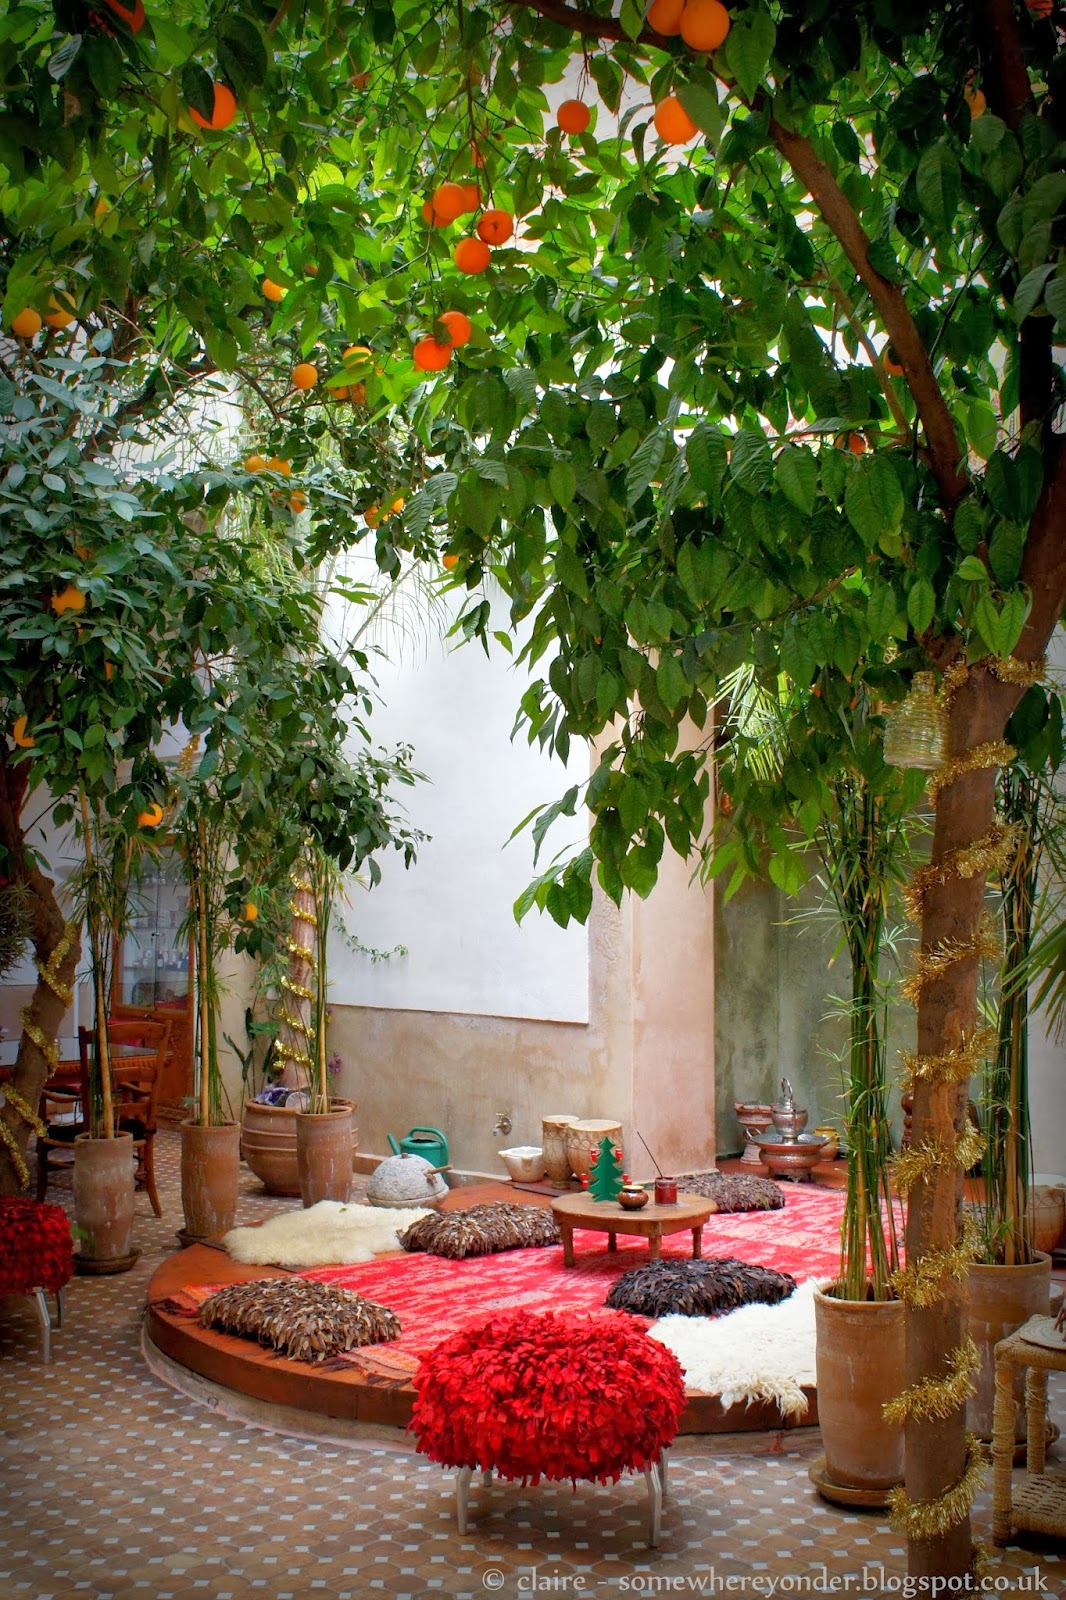 Inner courtyard at Riad Rafaele - complete with orange trees and spots to think and read